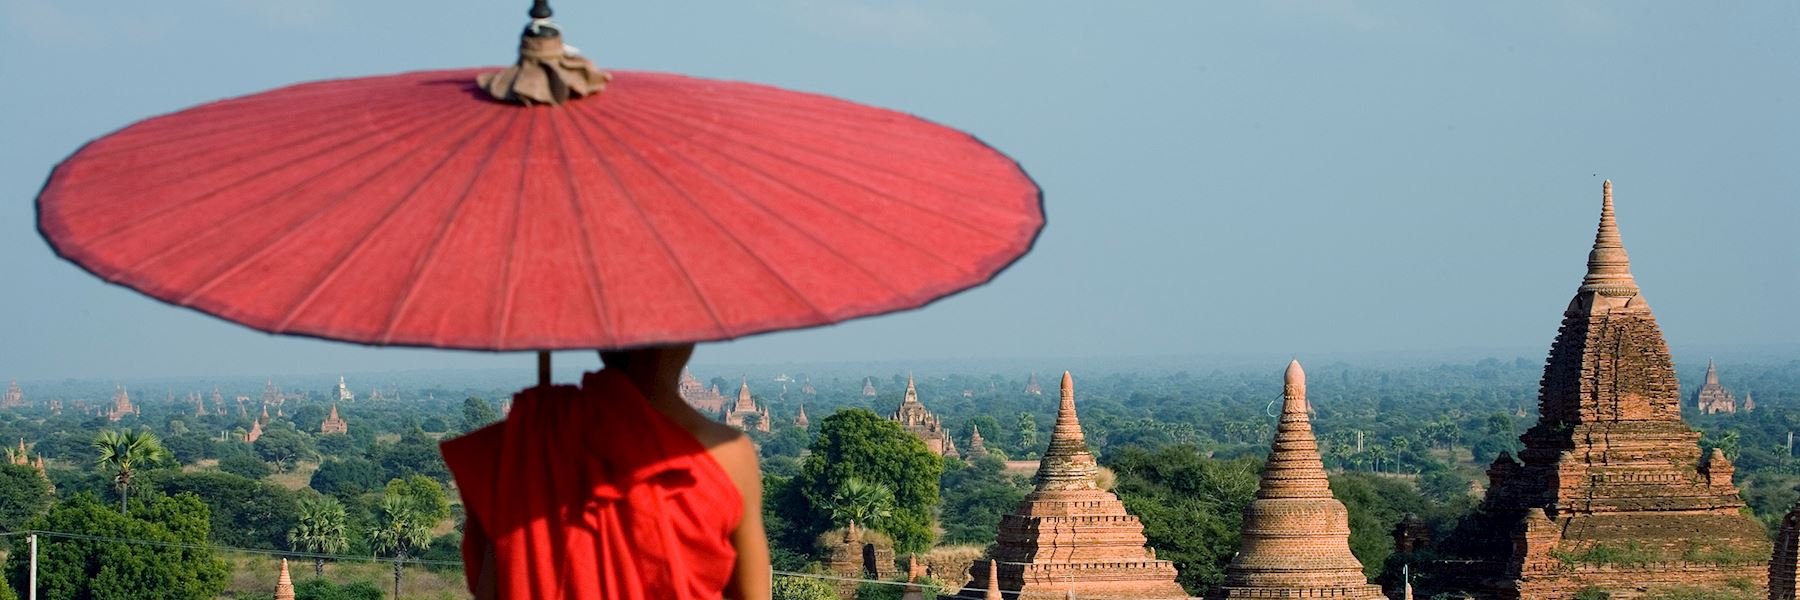 Burma (Myanmar) vacations